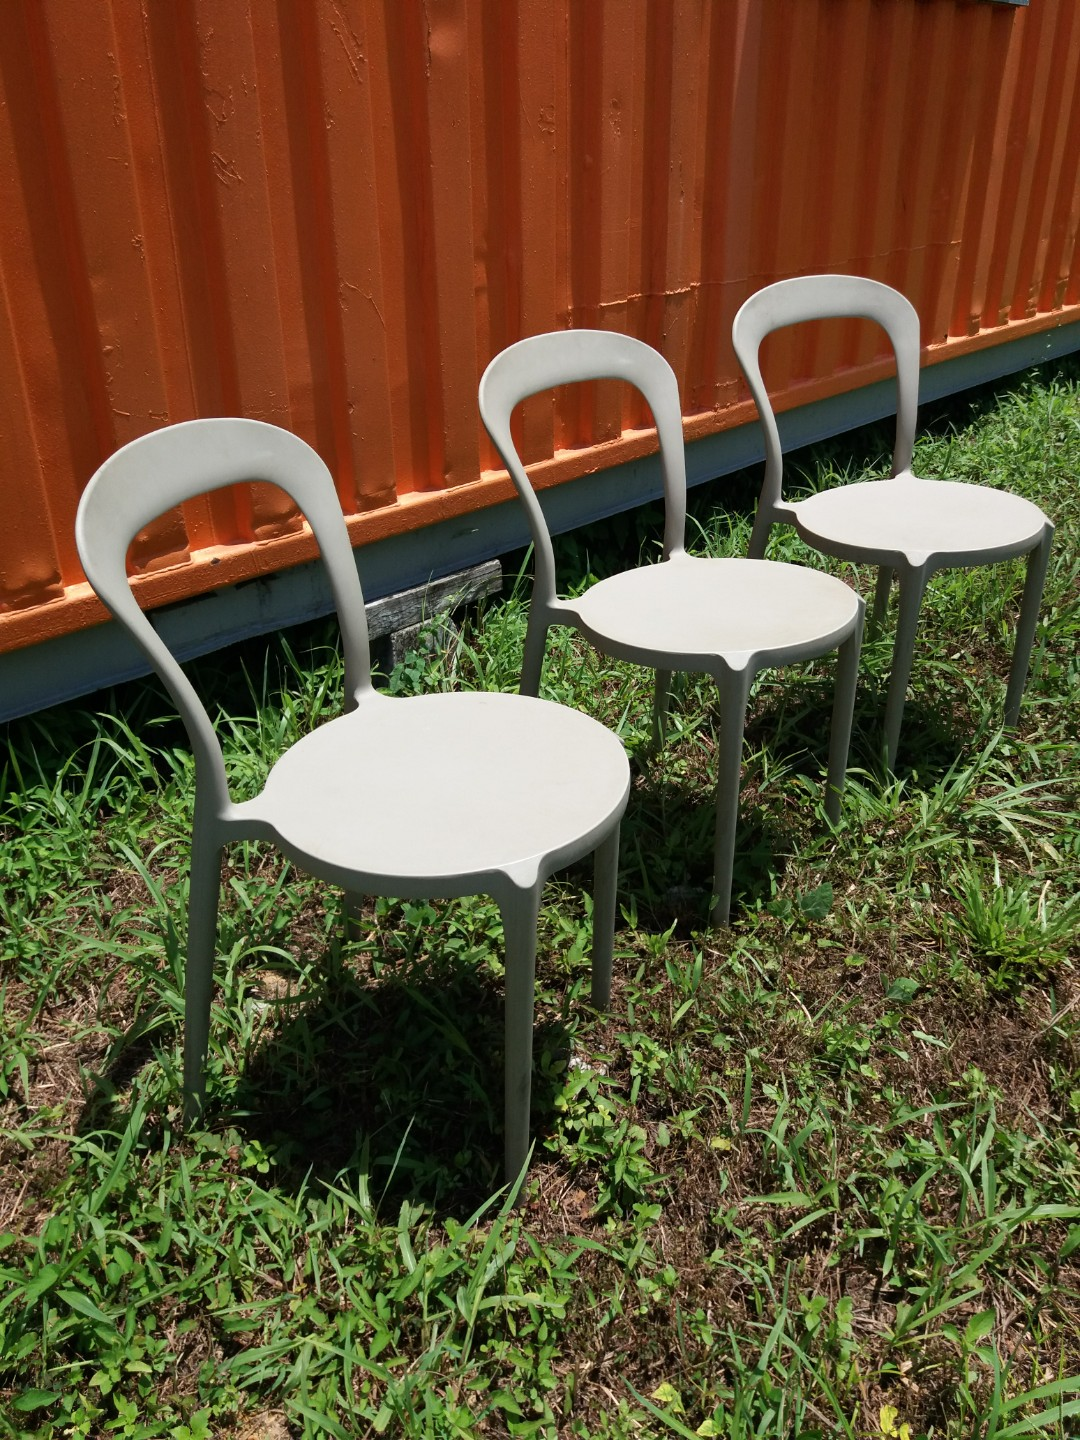 Garden Chairs Second Hand, Home & Furniture, Others on Carousell